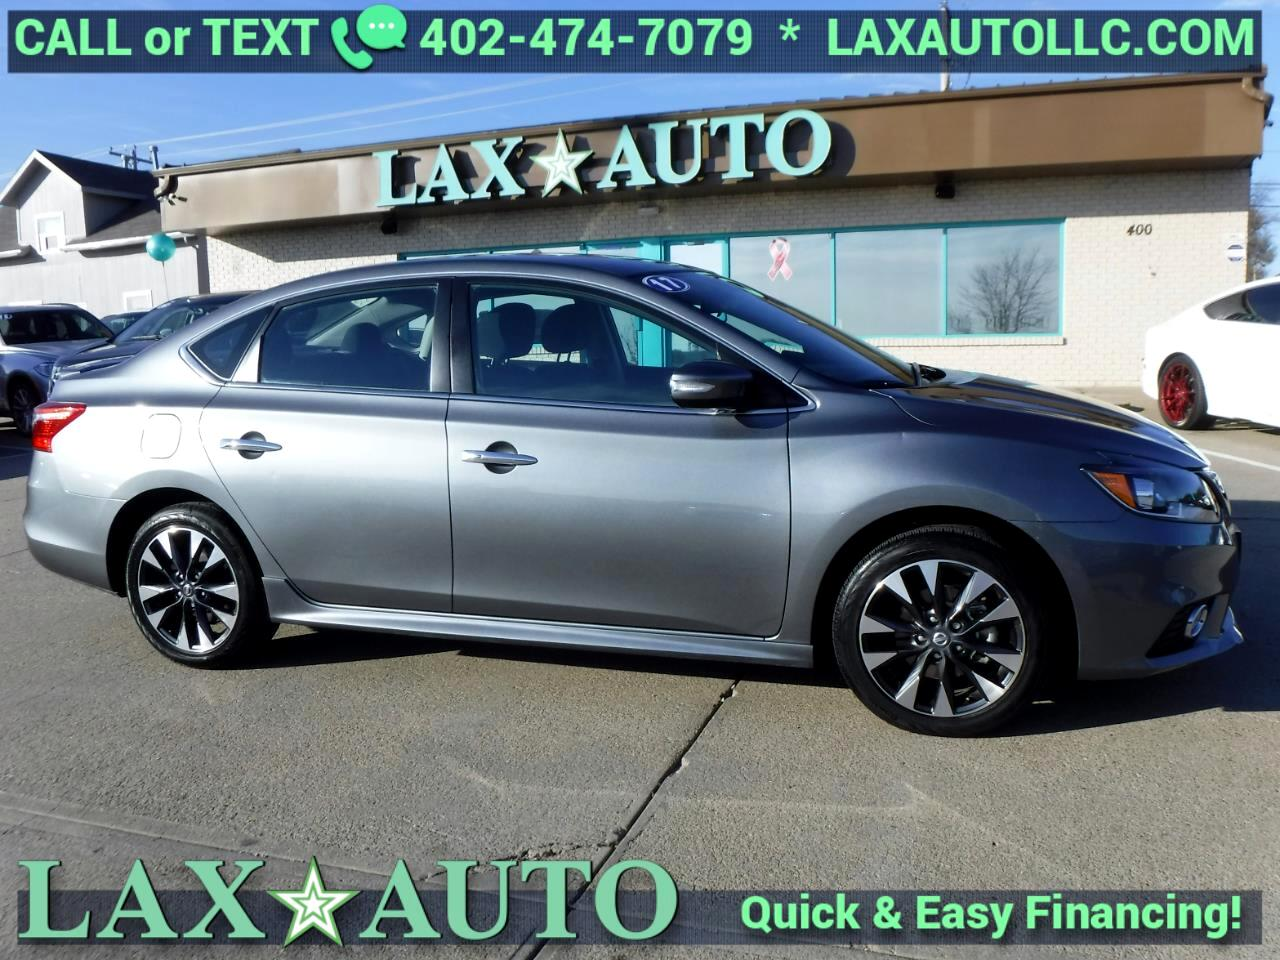 2017 Nissan Sentra SR * Only 6,126 miles! *Gray*